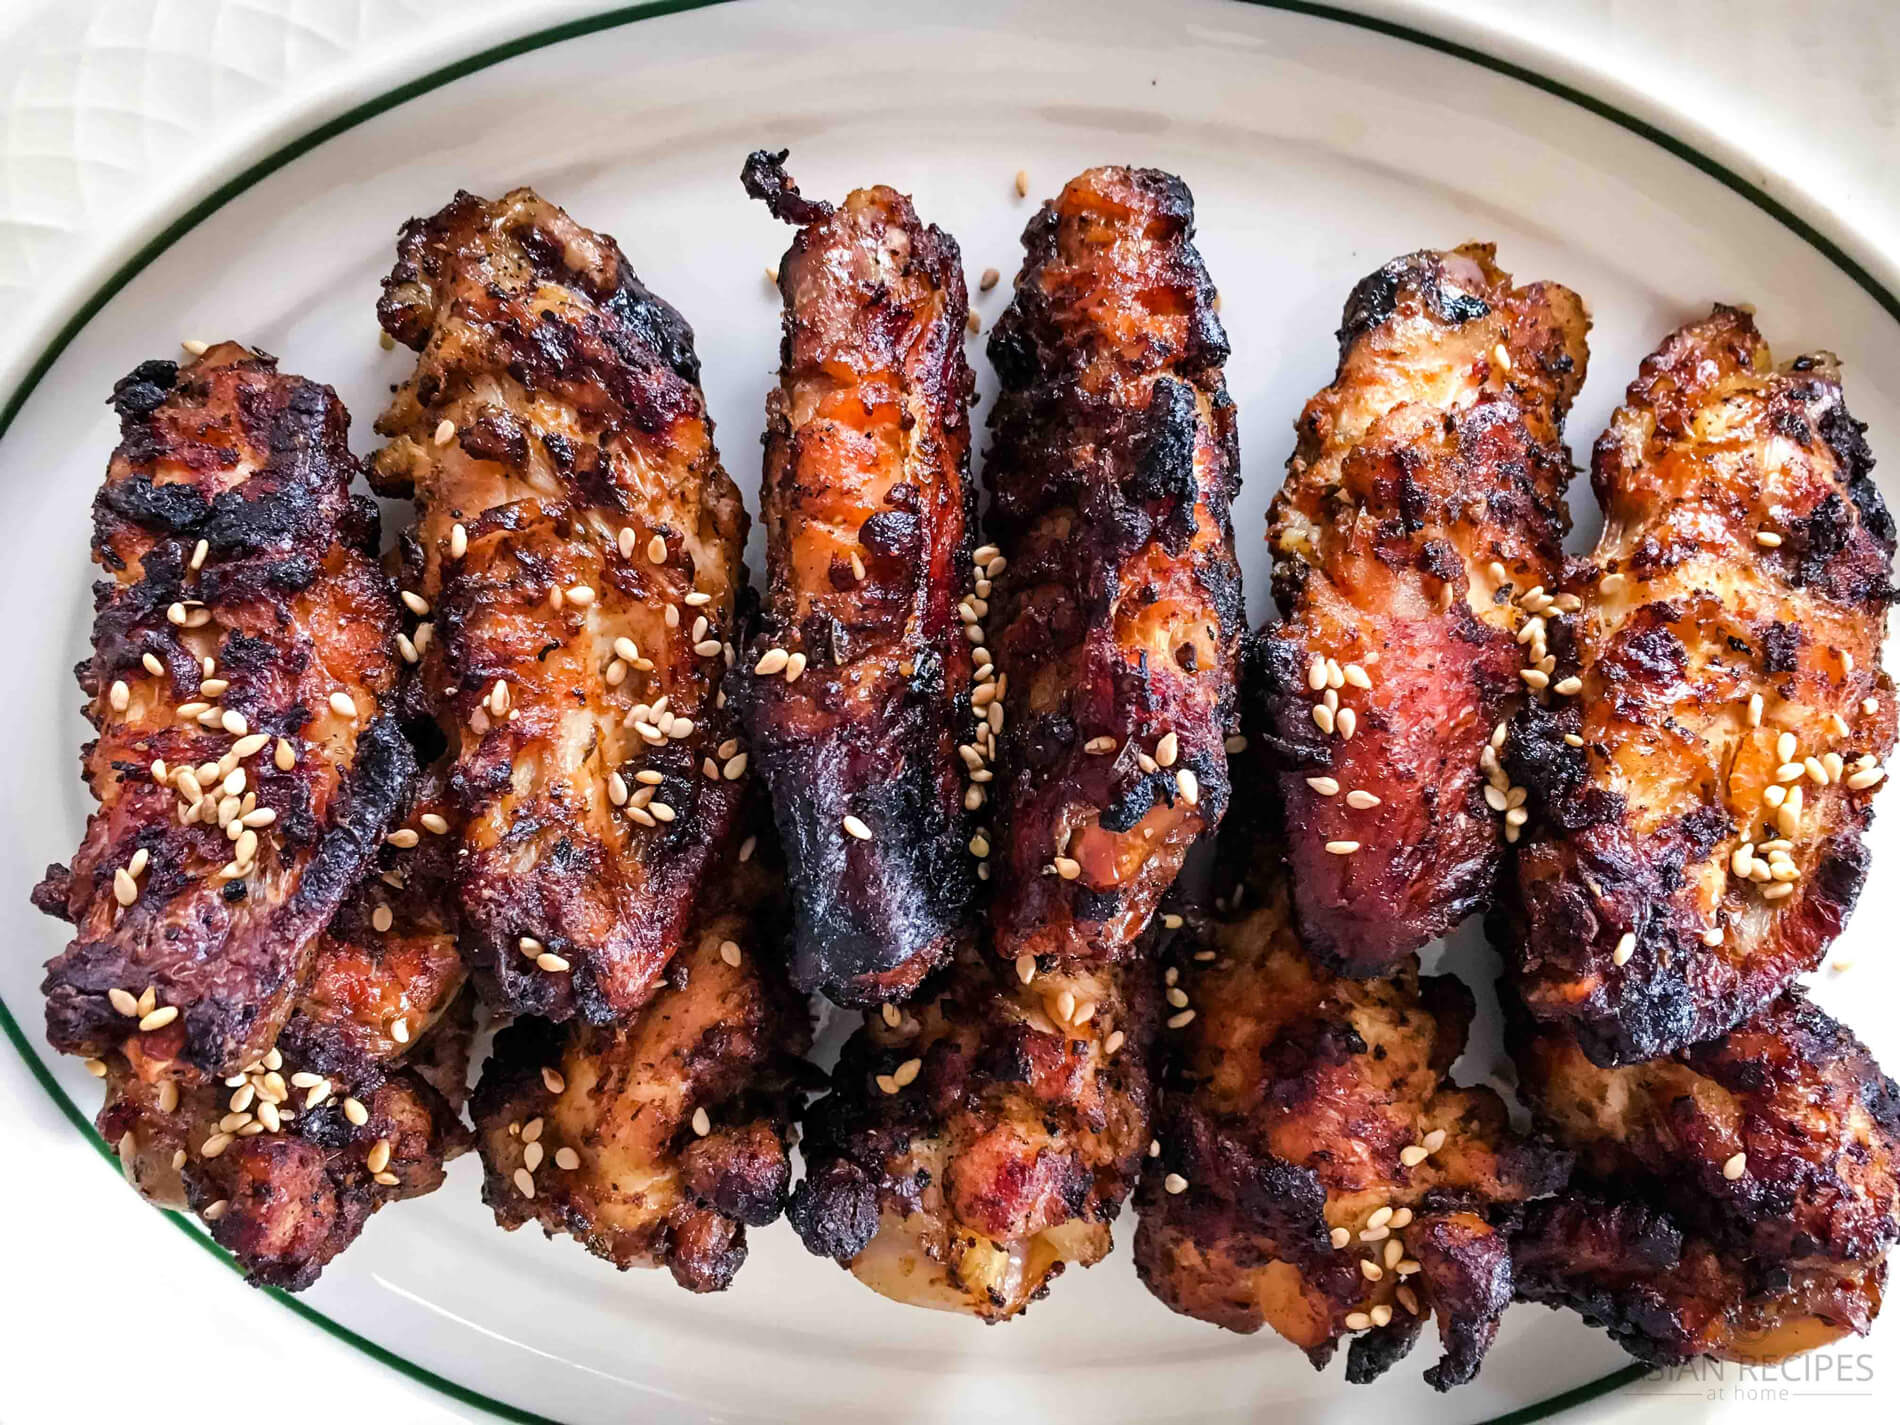 Grilled Asian-inspired chicken wings recipe ready to eat.